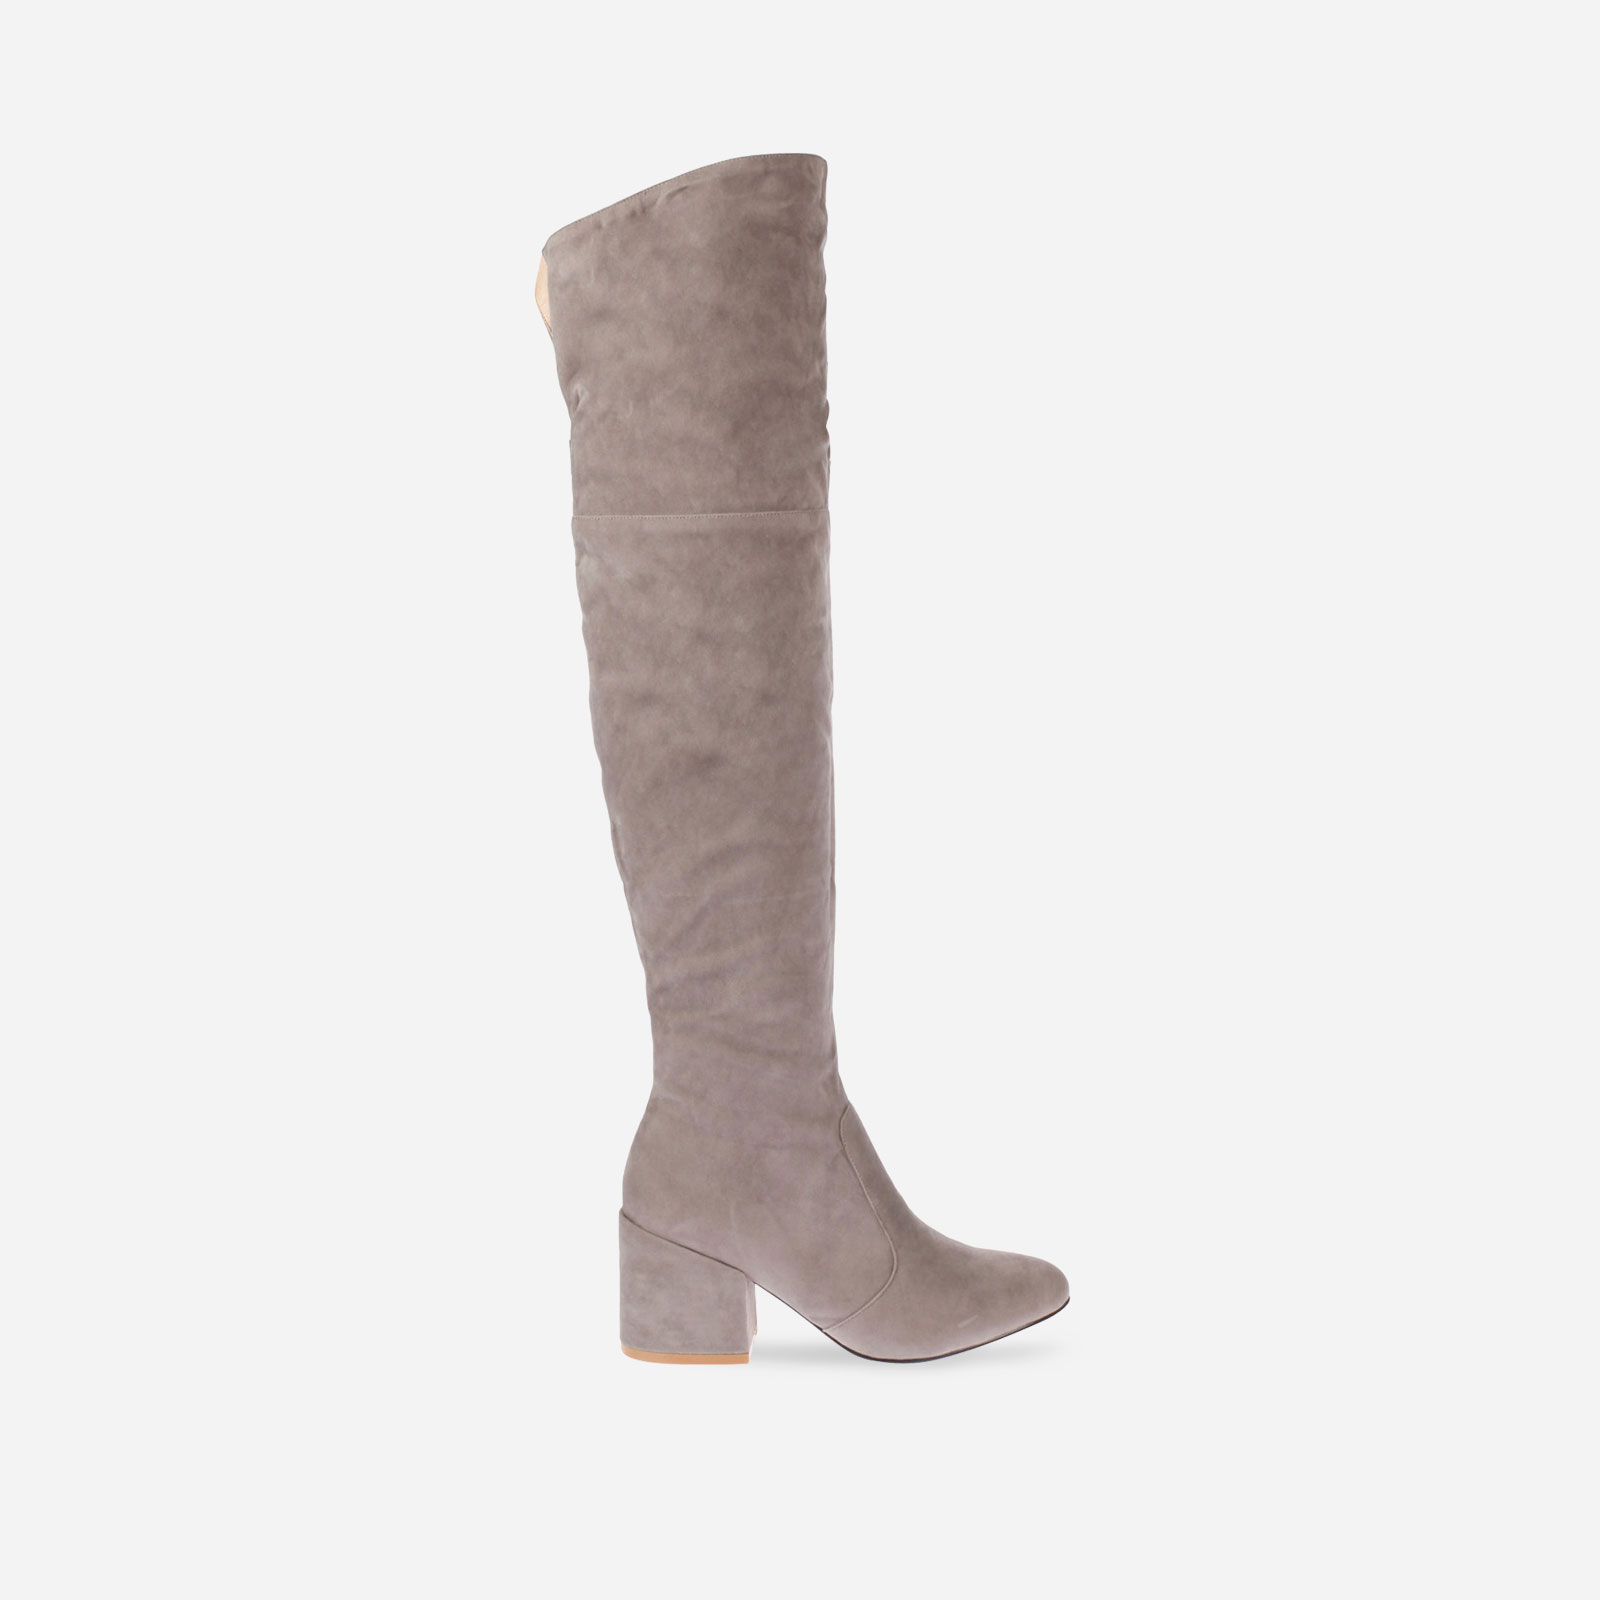 Harmony Over The Knee Boot With Midi Heel In Grey Faux Suede Image 1